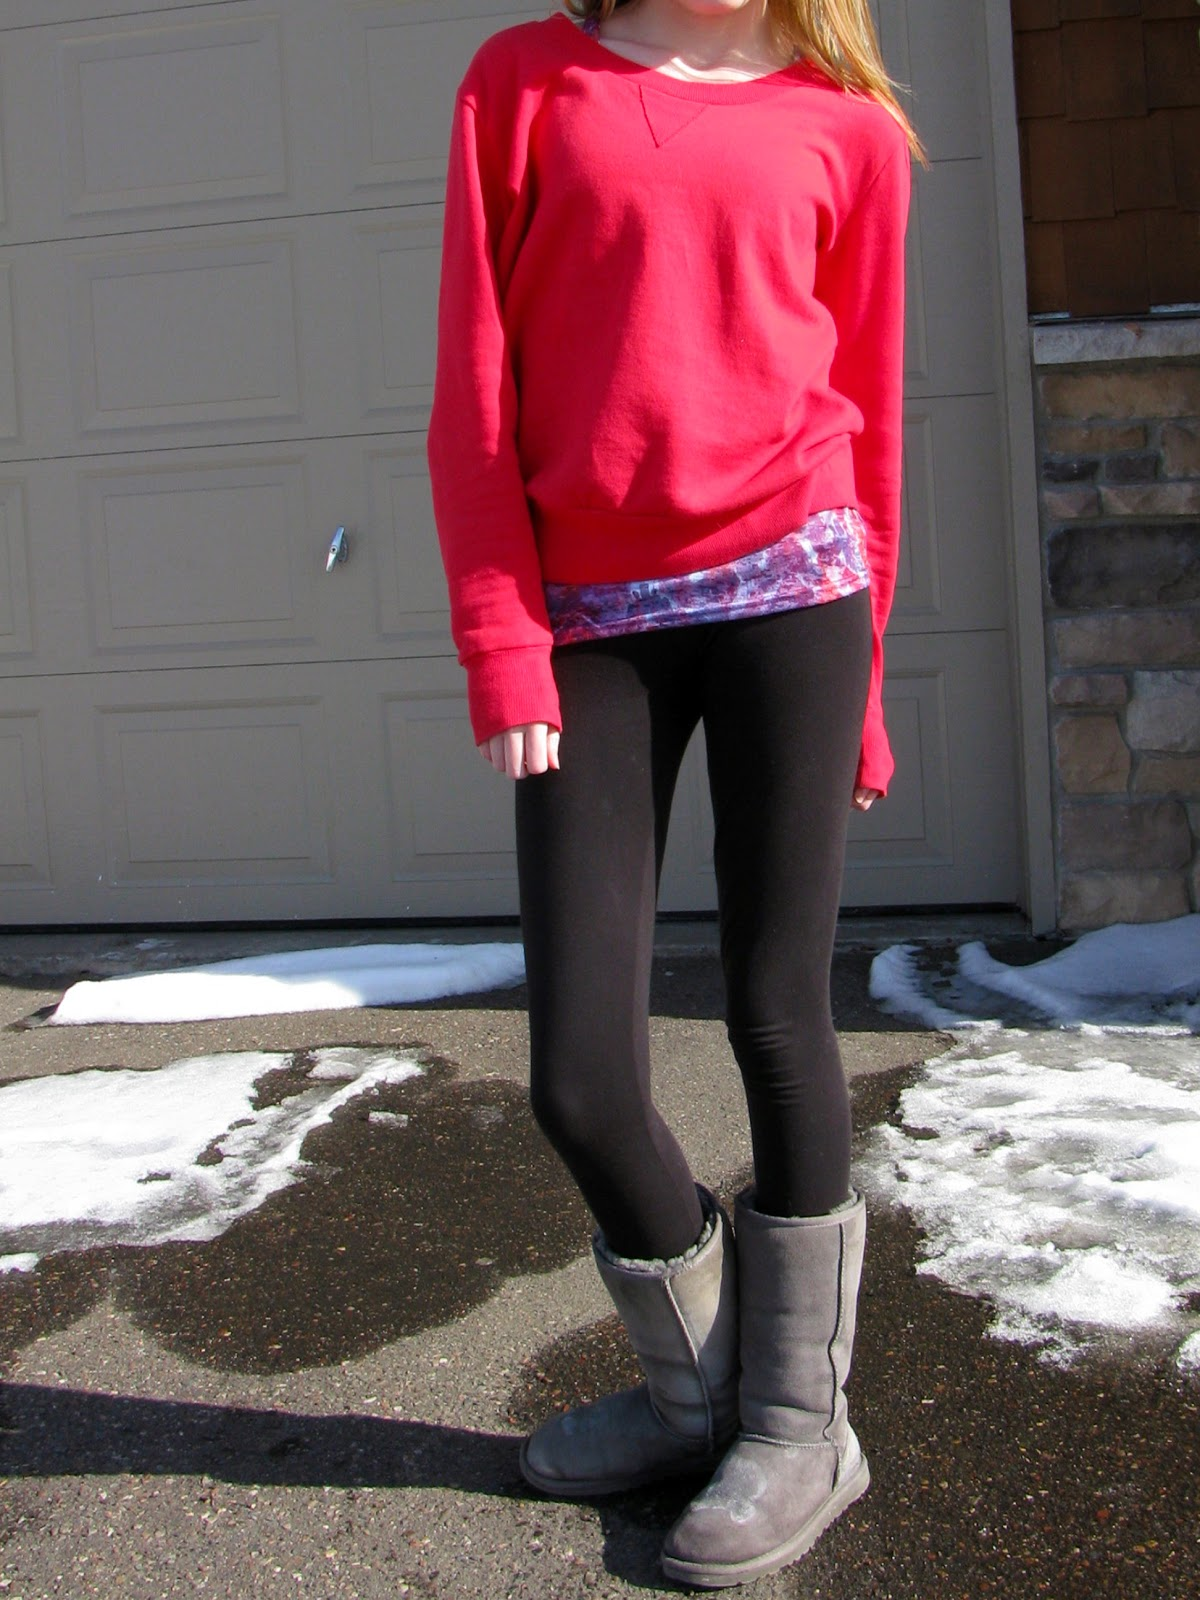 Yoga Pants And Uggs Pictures | David Simchi-Levi